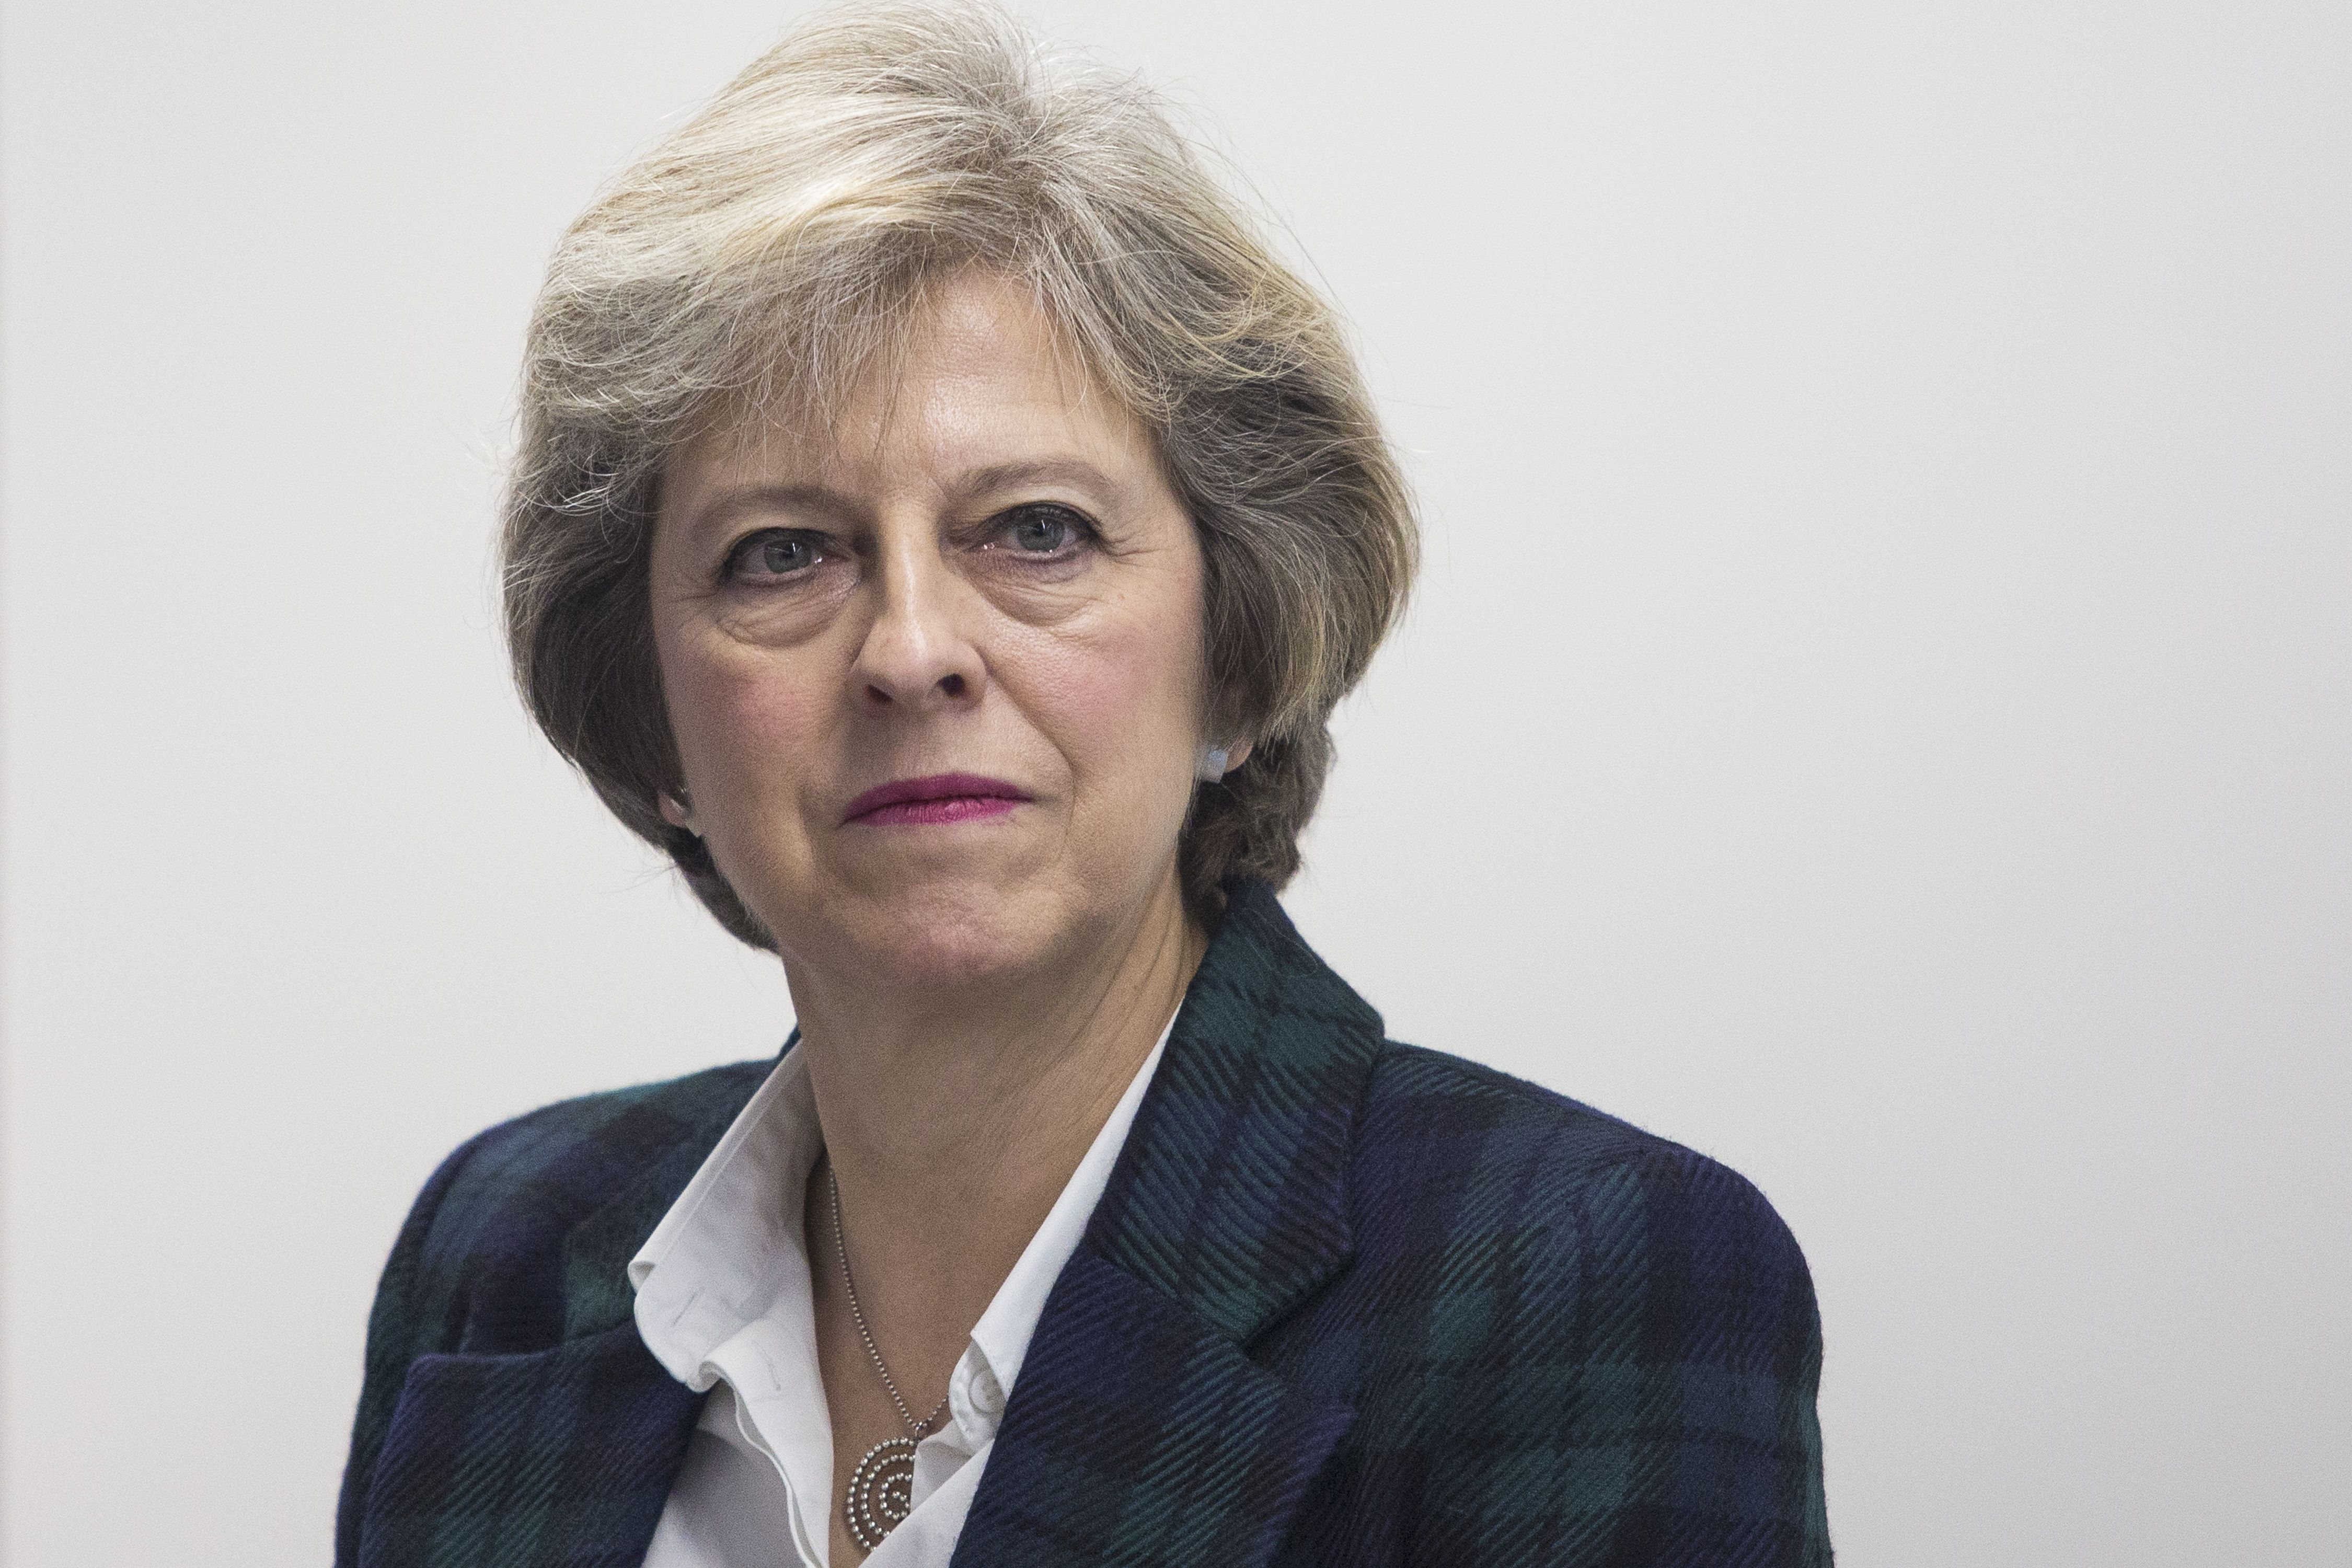 Britain's Prime Minister Theresa May in London on November 14, 2016.